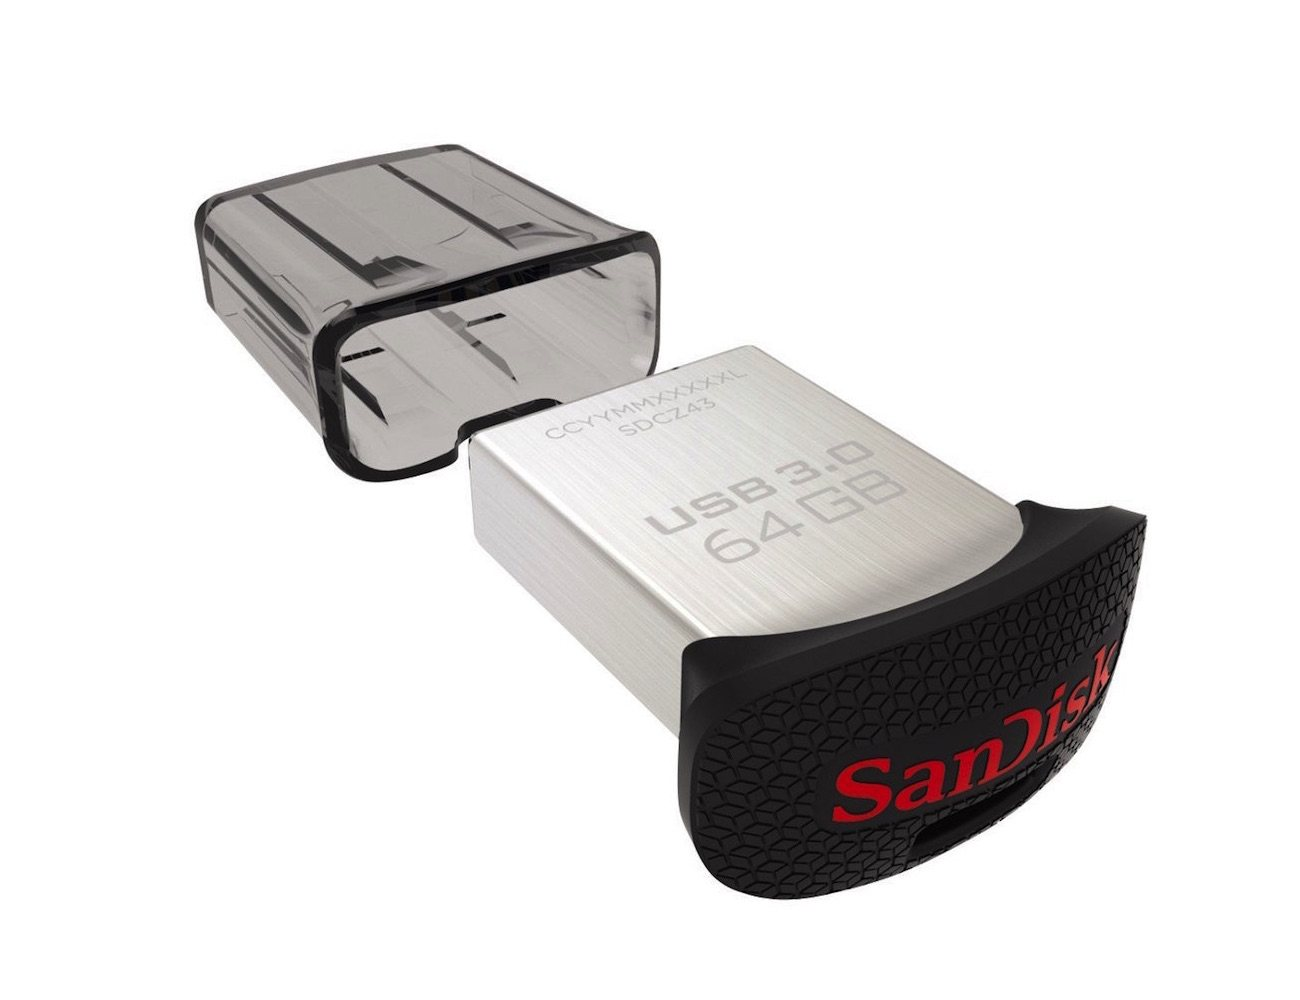 worlds-smallest-usb-3-flash-drive-by-sandisk-04